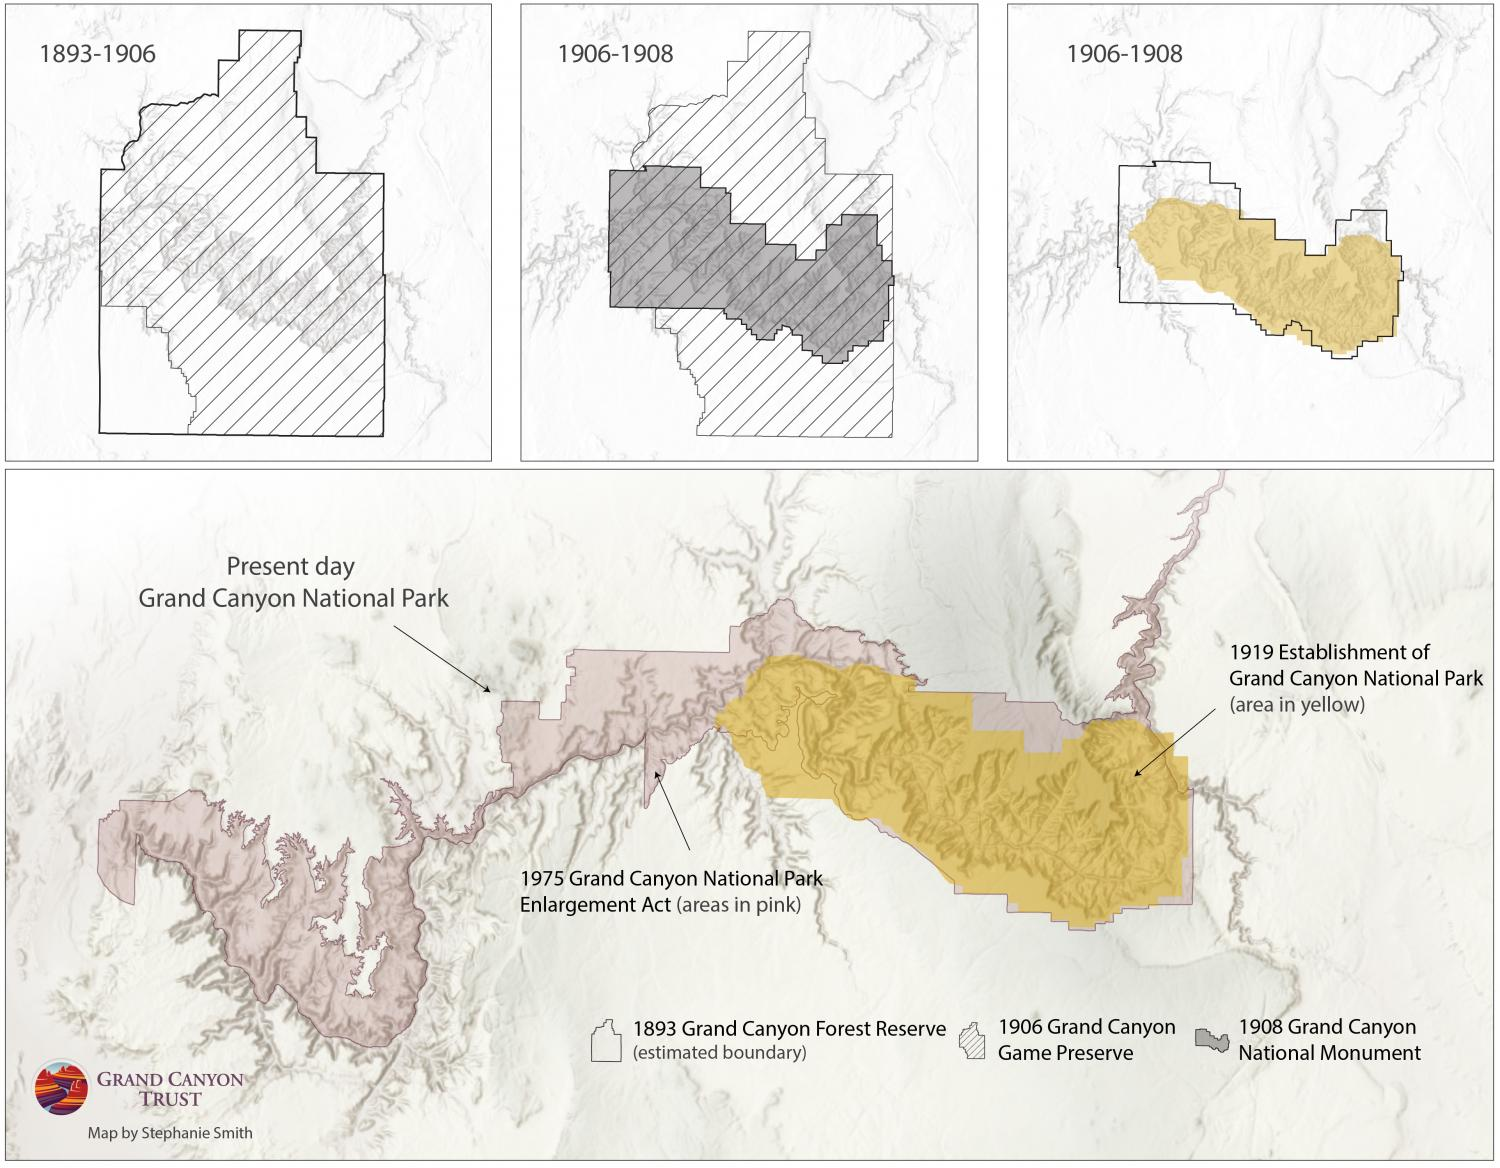 Map of historic boundaries and present day Grand Canyon National Park.